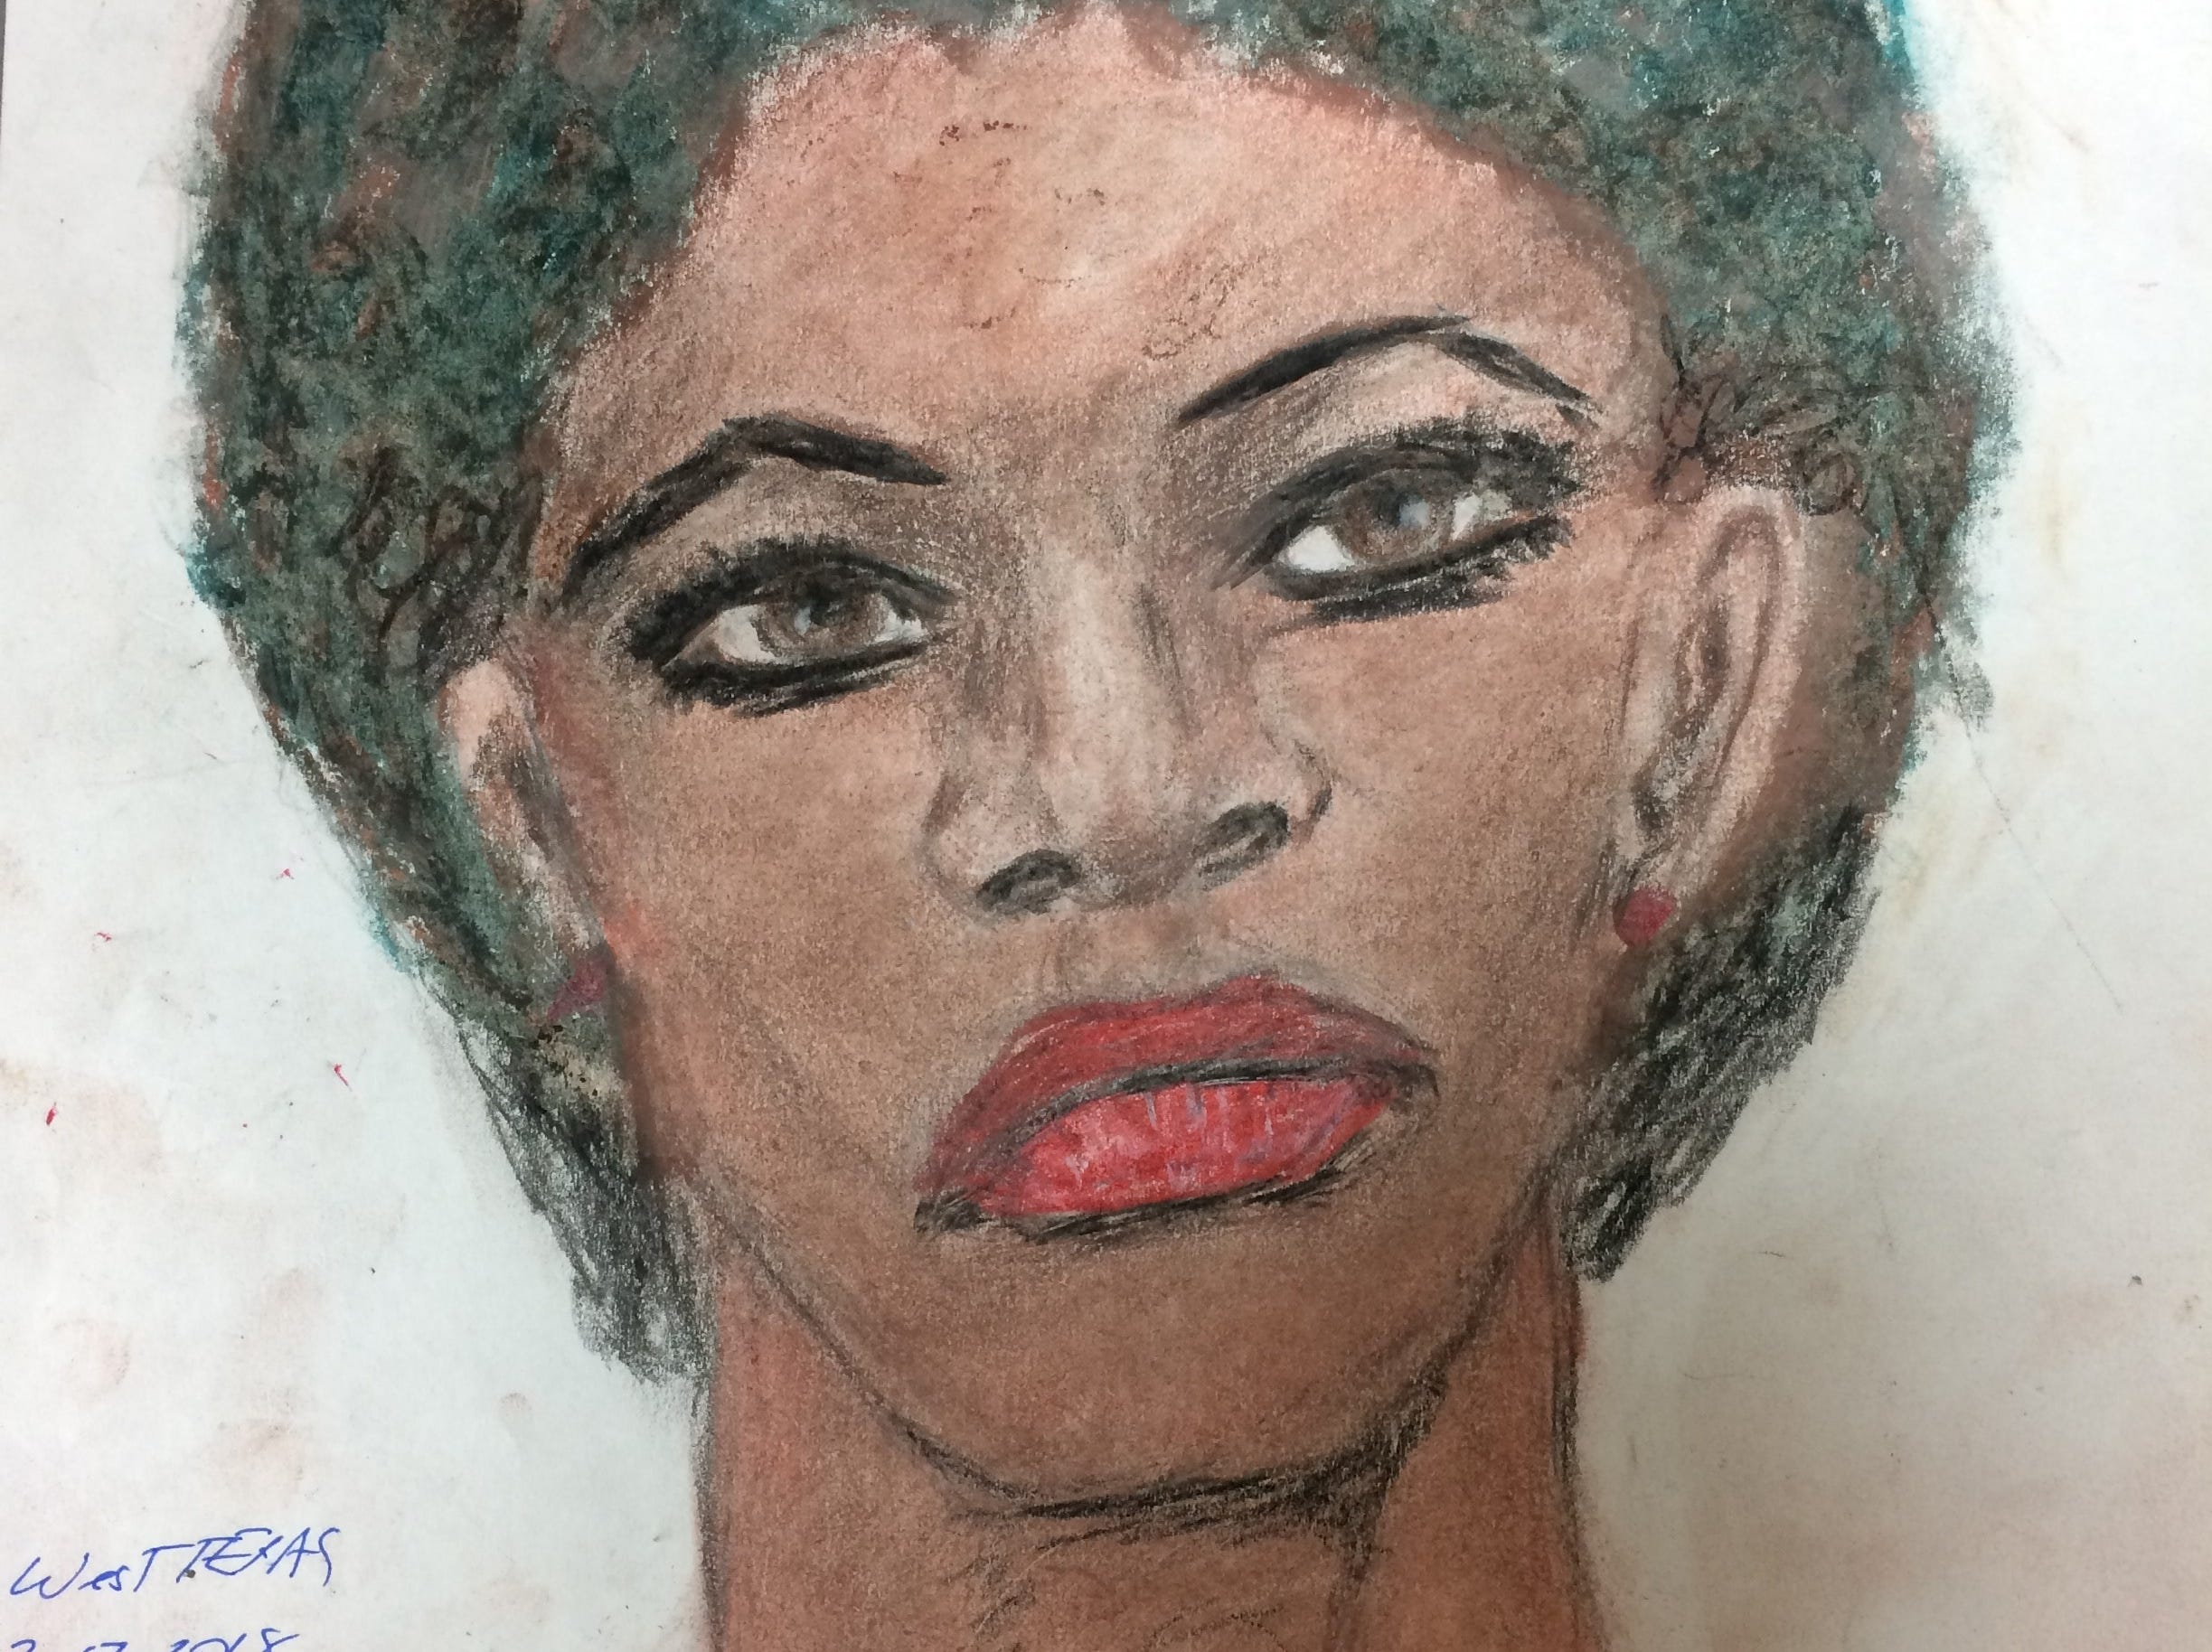 Samuel Little drew this woman who he says he killed either in 1976 or 1977 in Wichita Falls, Texas. Little told authorities he disposed of her remains somewhere outside the city.